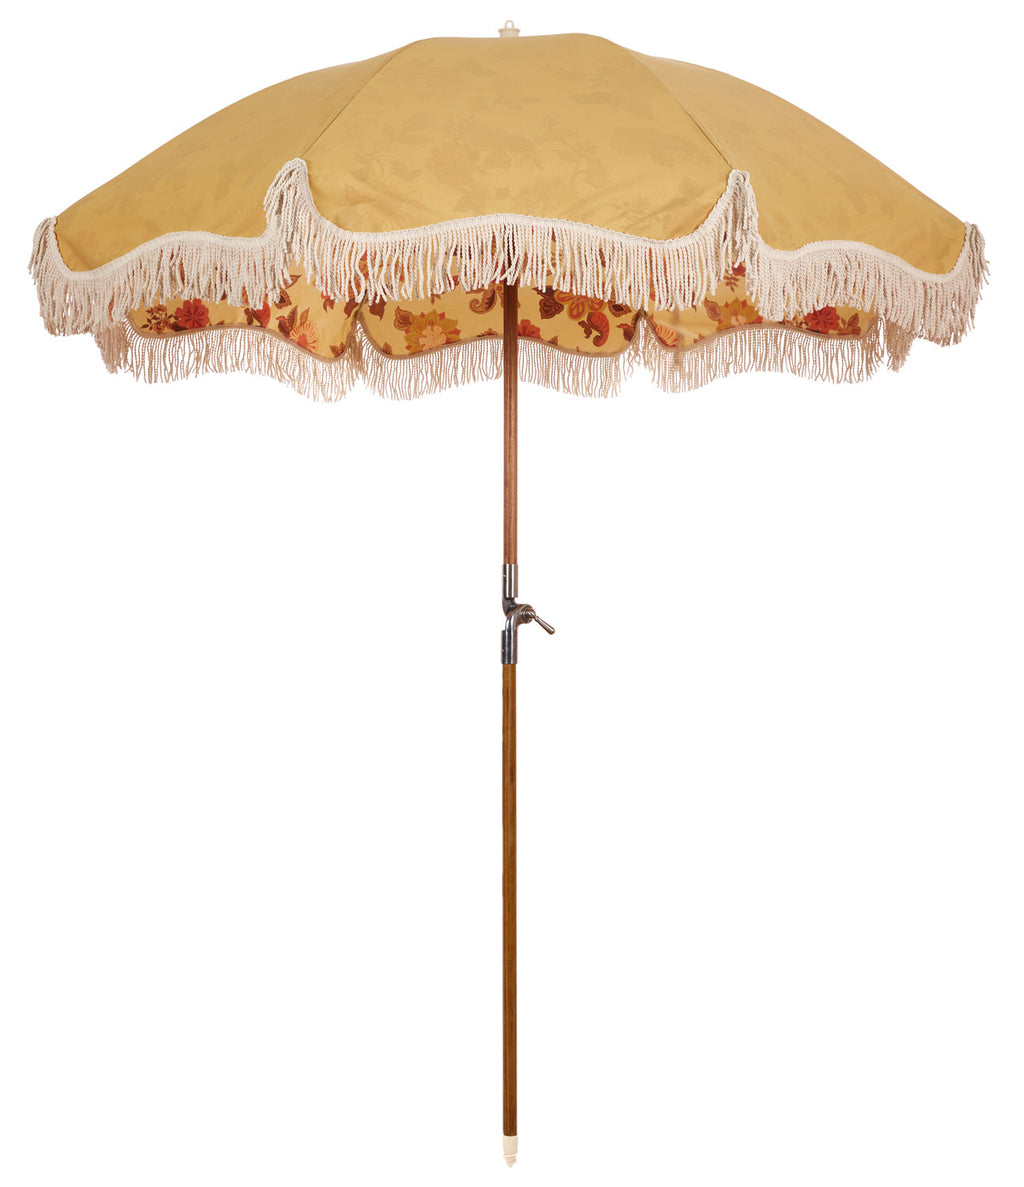 Paisley Bay Premium Beach Umbrella